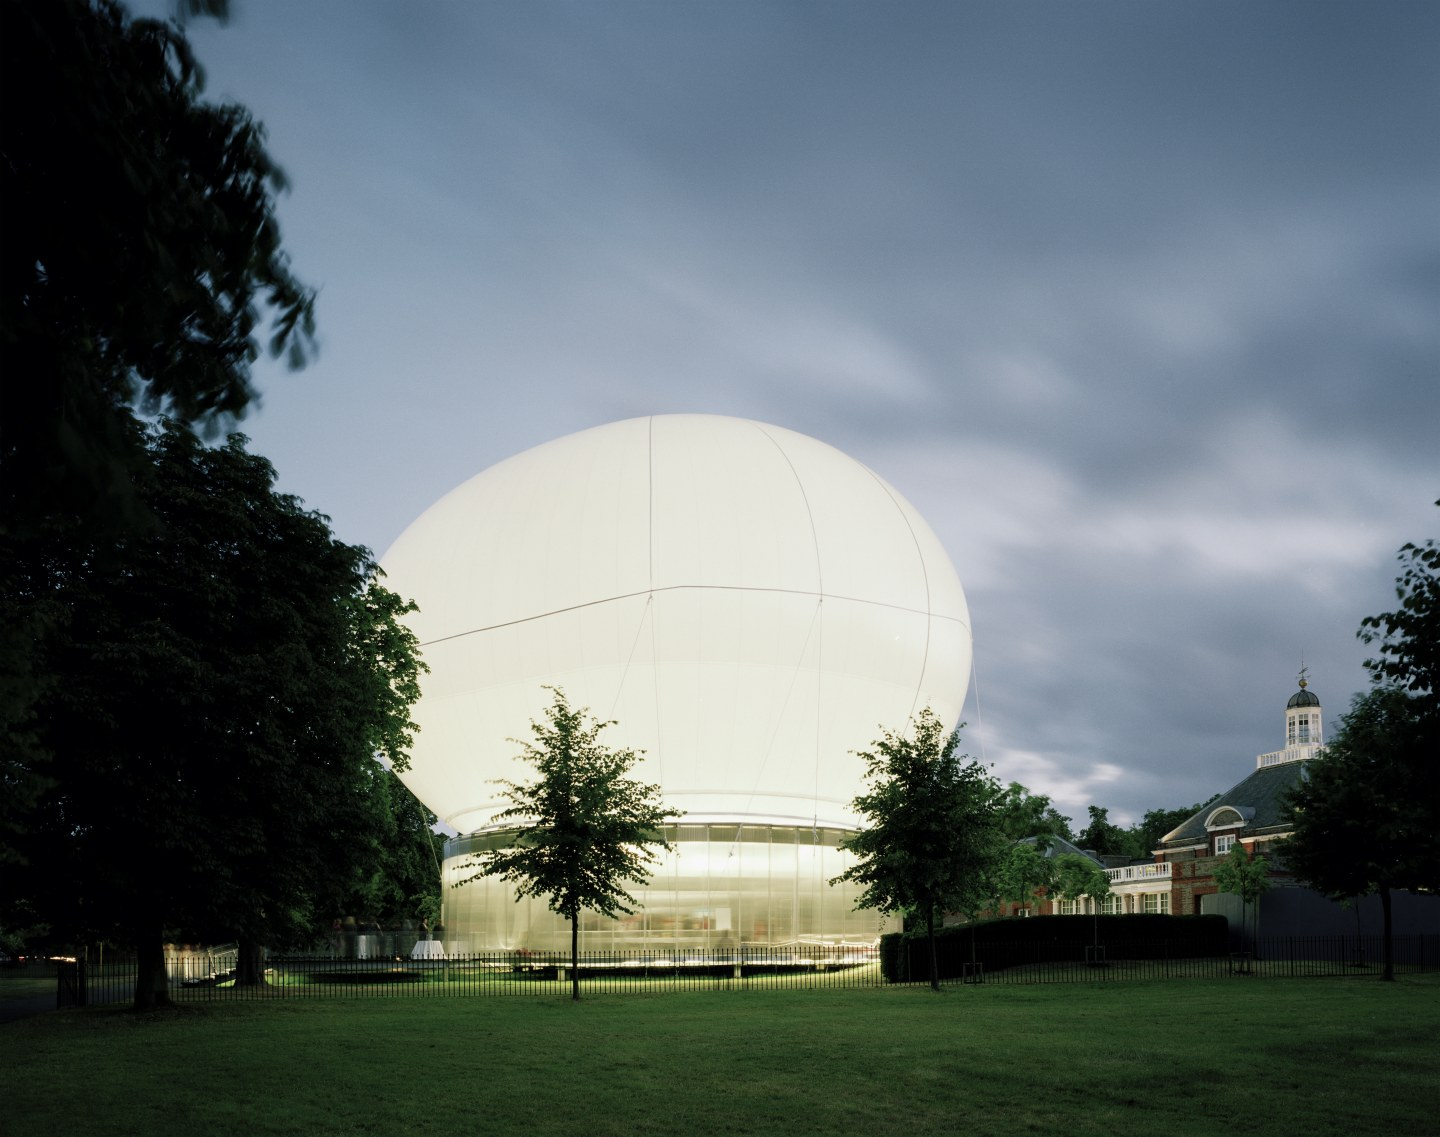 Image 9 of 34 | Serpentine Gallery Pavilion 2006 by Rem Koolhaas and Cecil Balmond with Arup